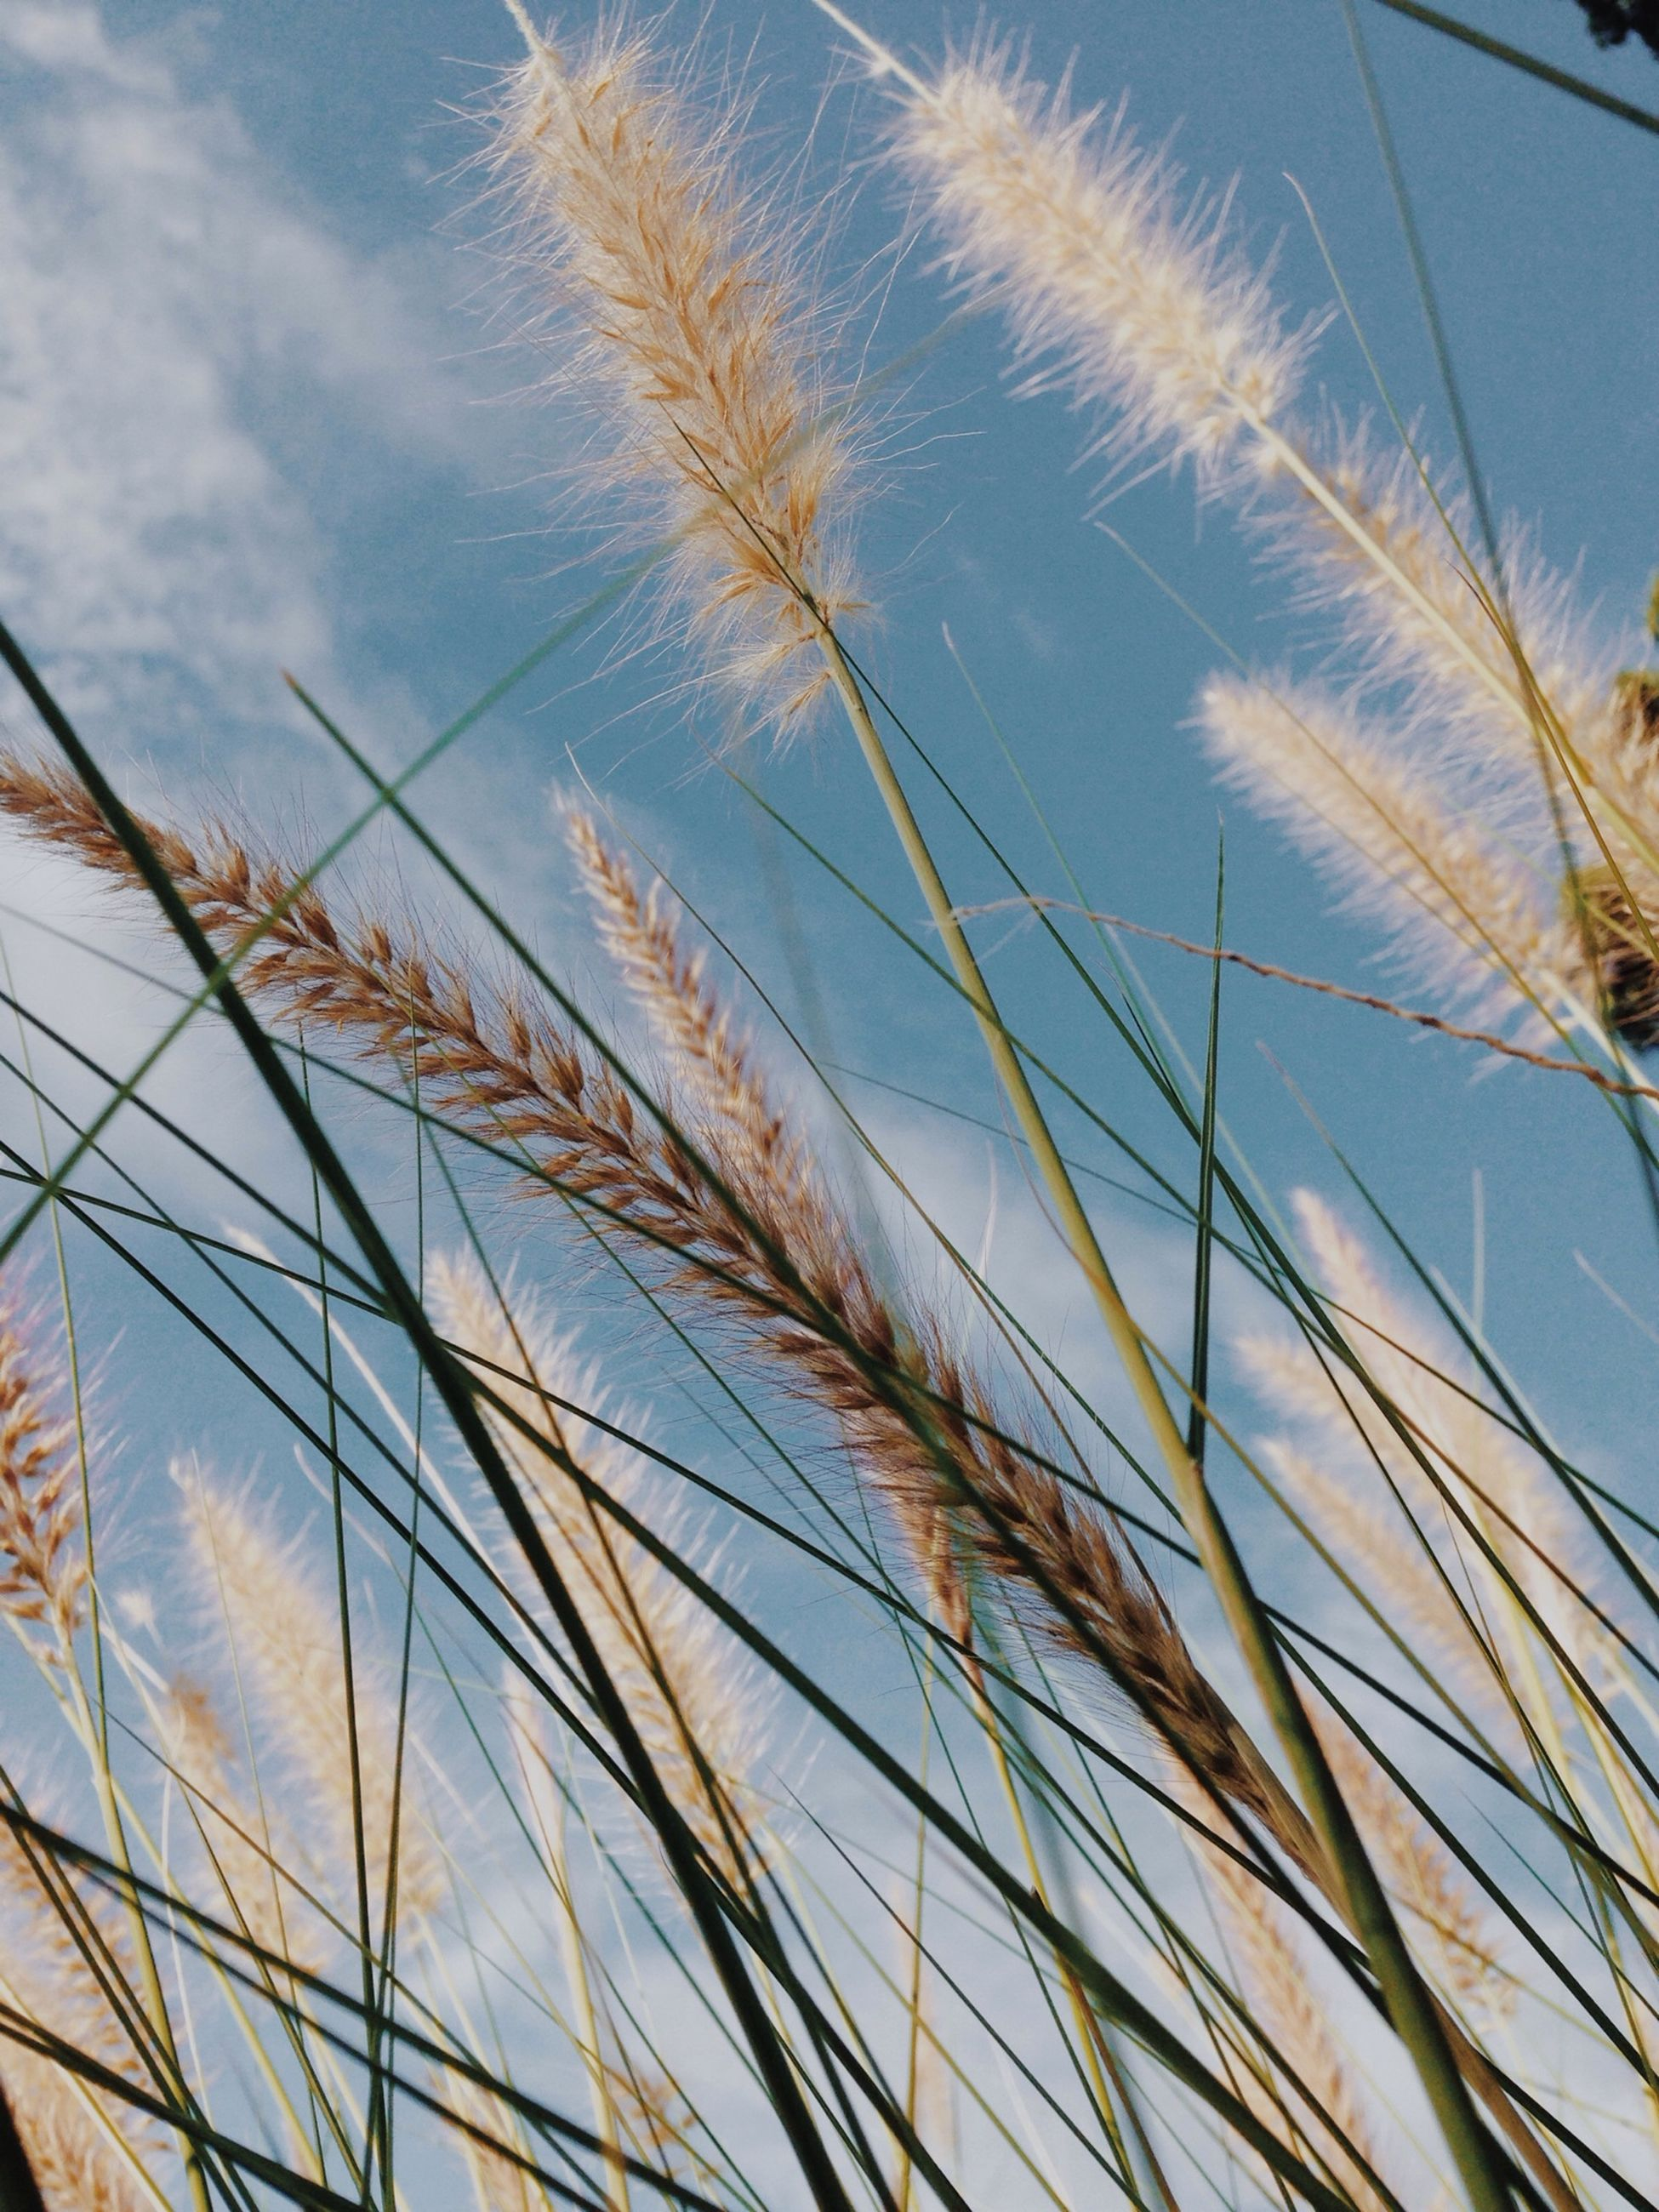 growth, plant, nature, sky, tranquility, grass, beauty in nature, close-up, cereal plant, crop, day, growing, wheat, no people, outdoors, palm tree, agriculture, stalk, stem, straw